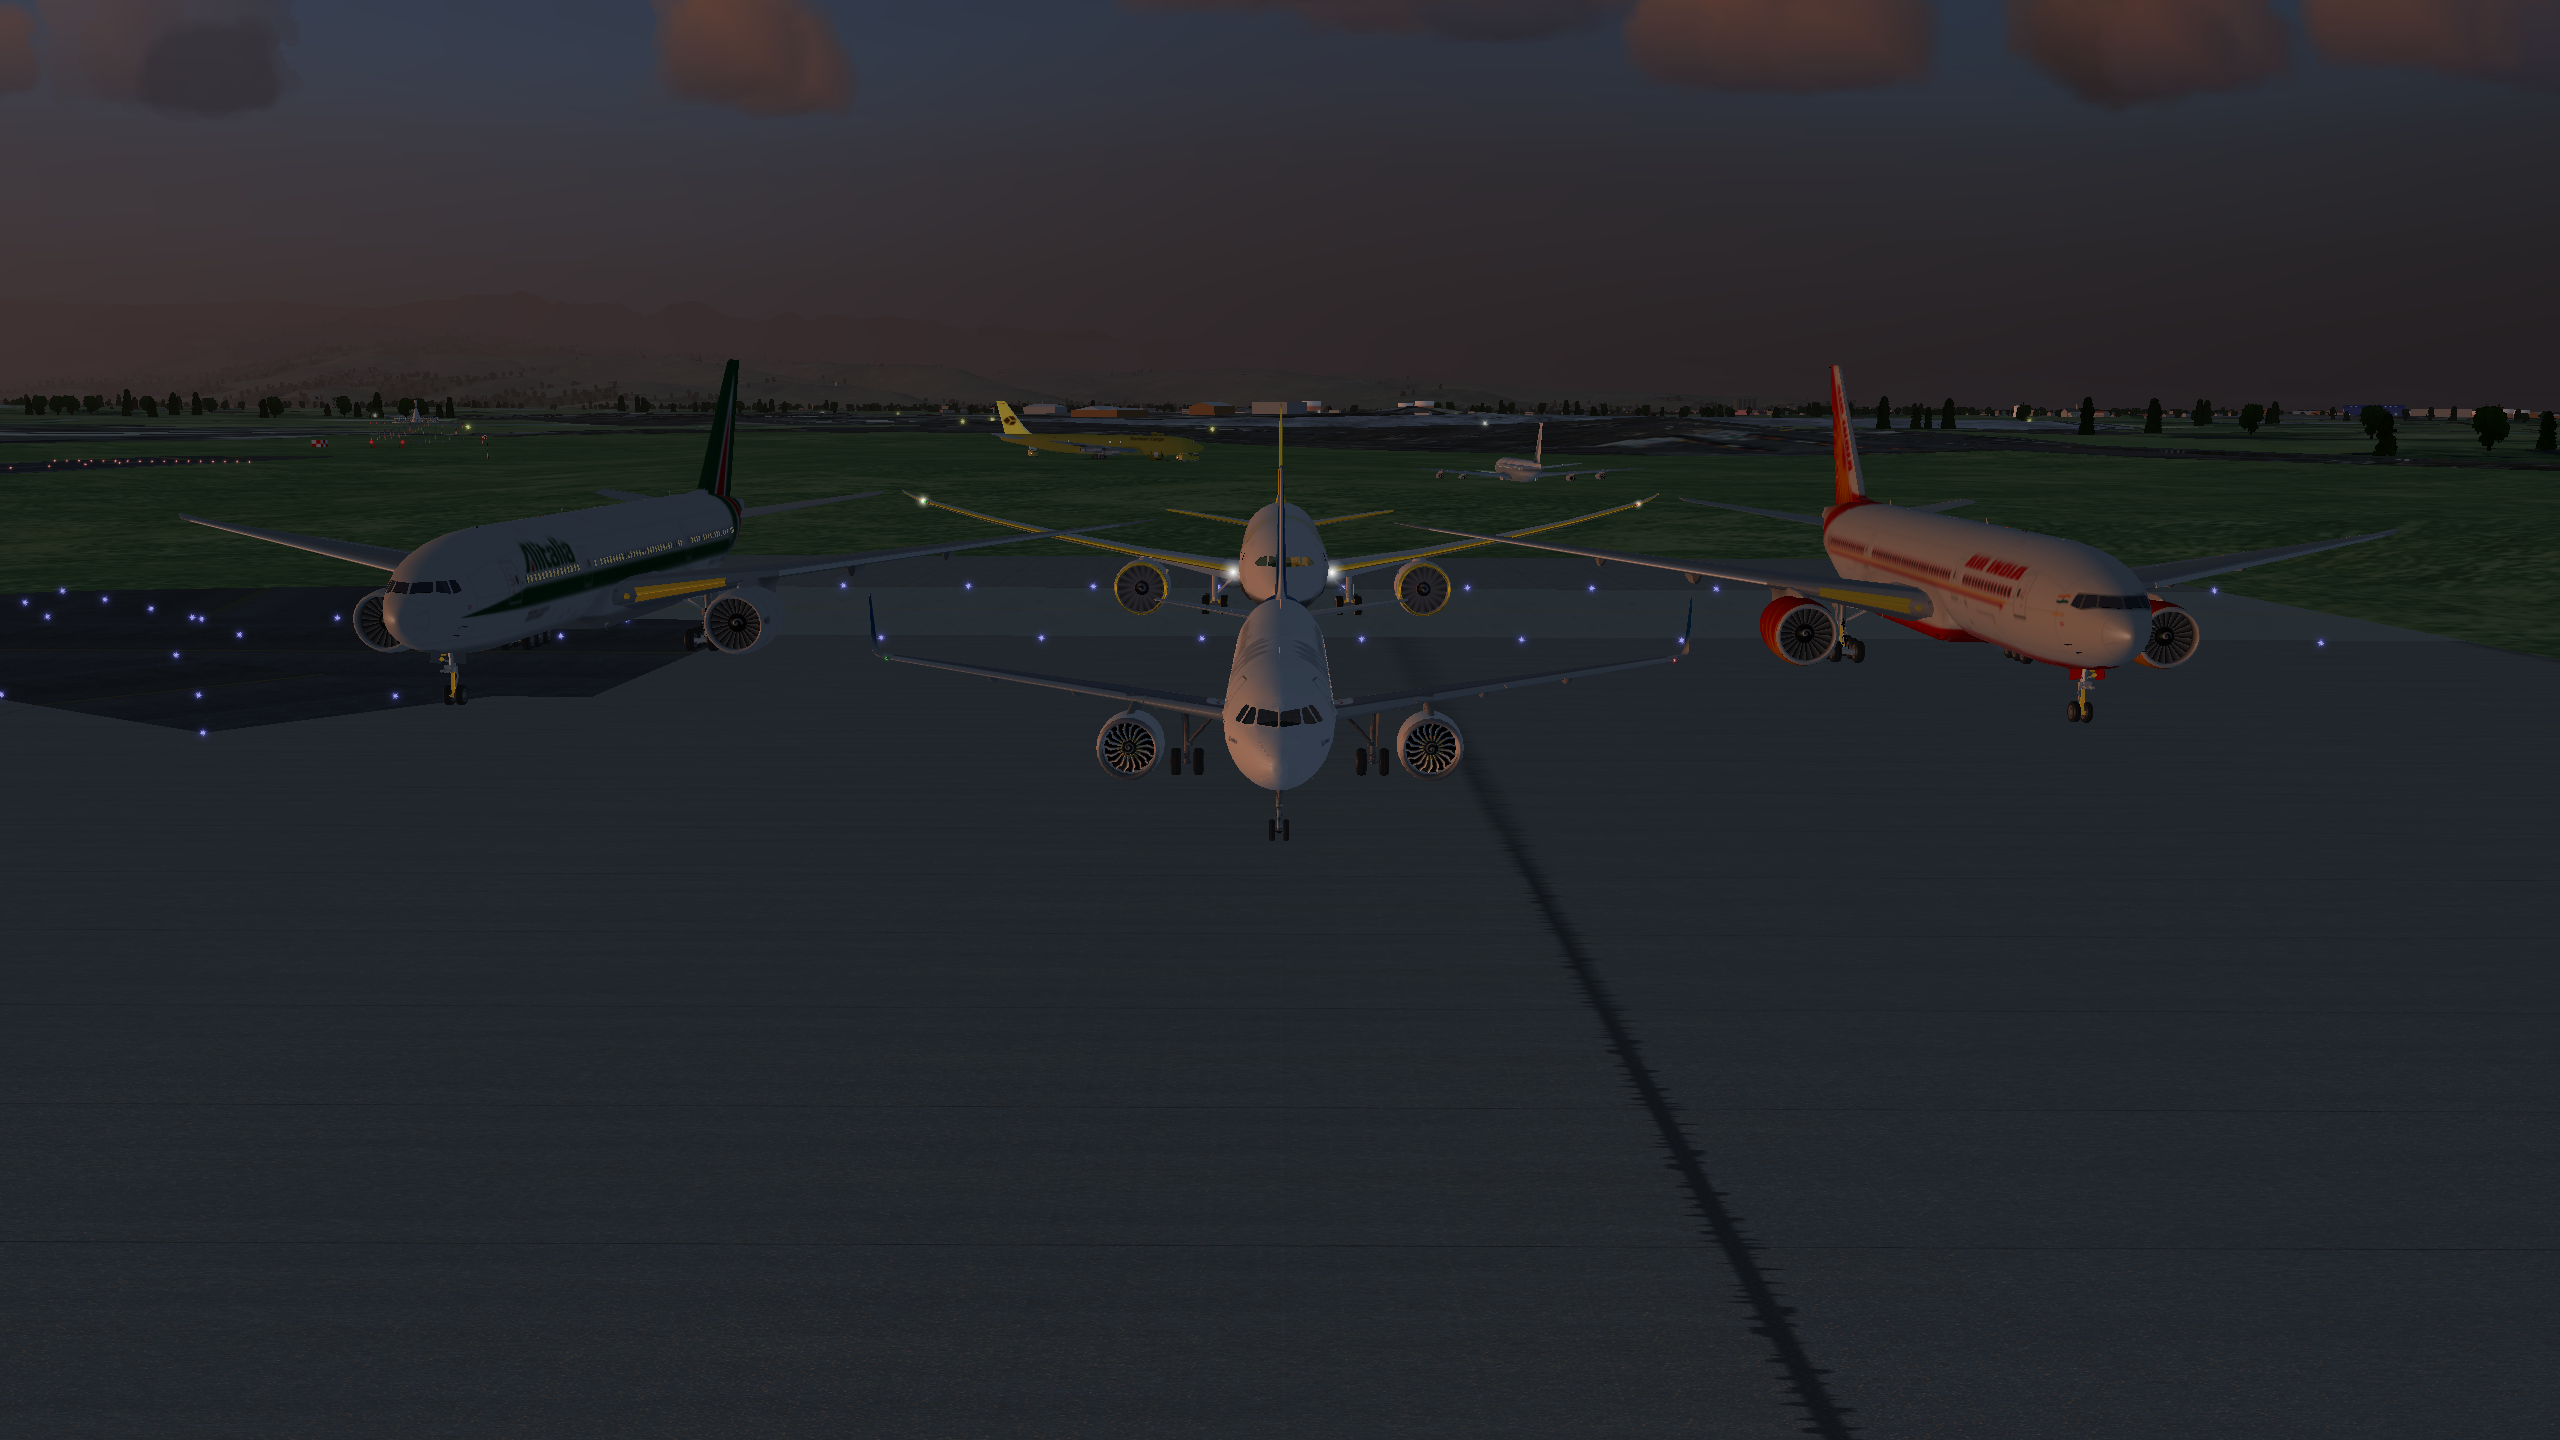 Aircraft grouped on ground (777, 787, A320)